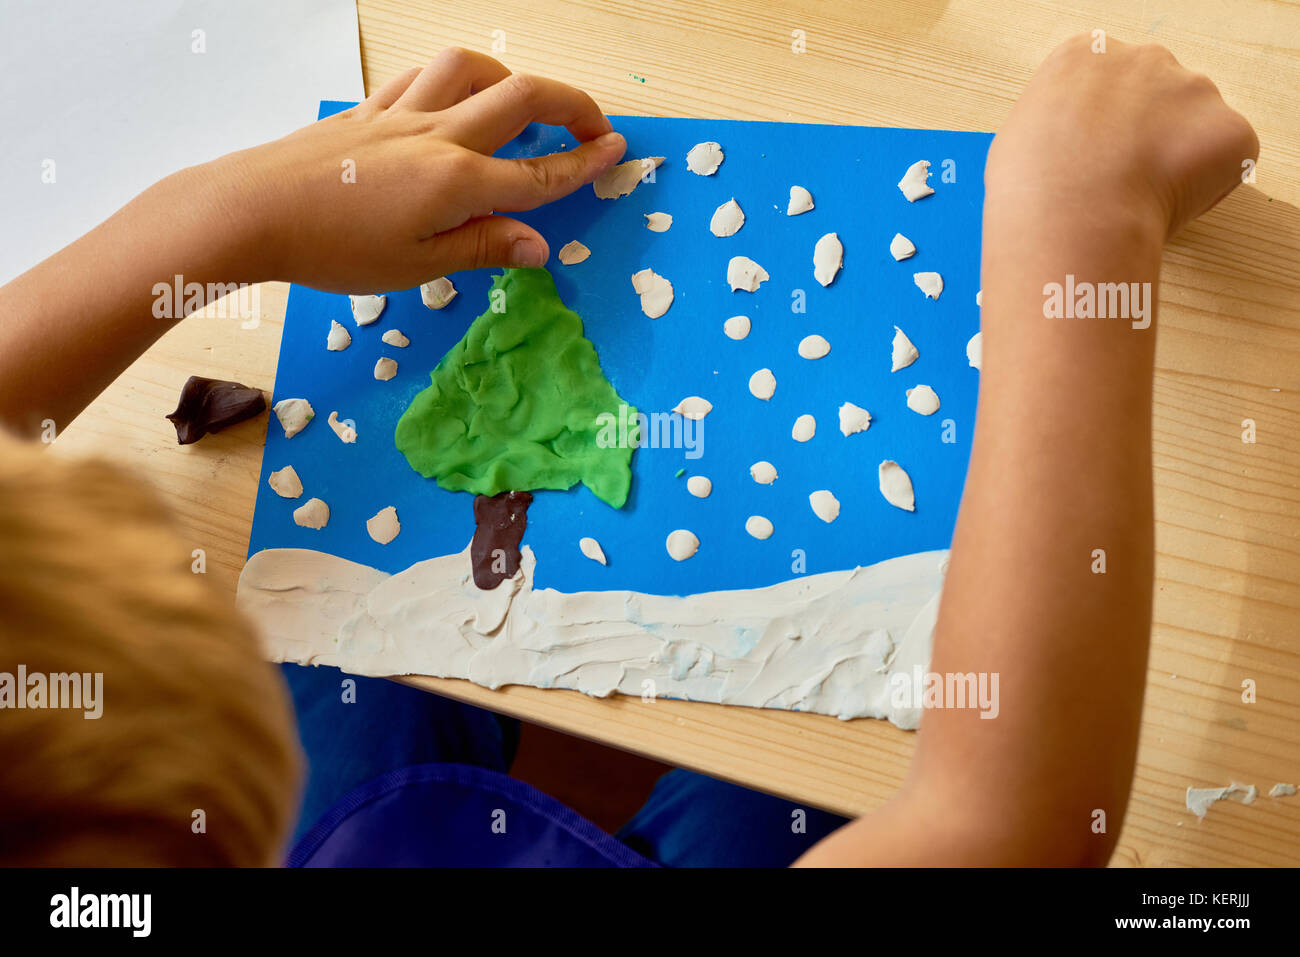 Child Crafting in Development School - Stock Image